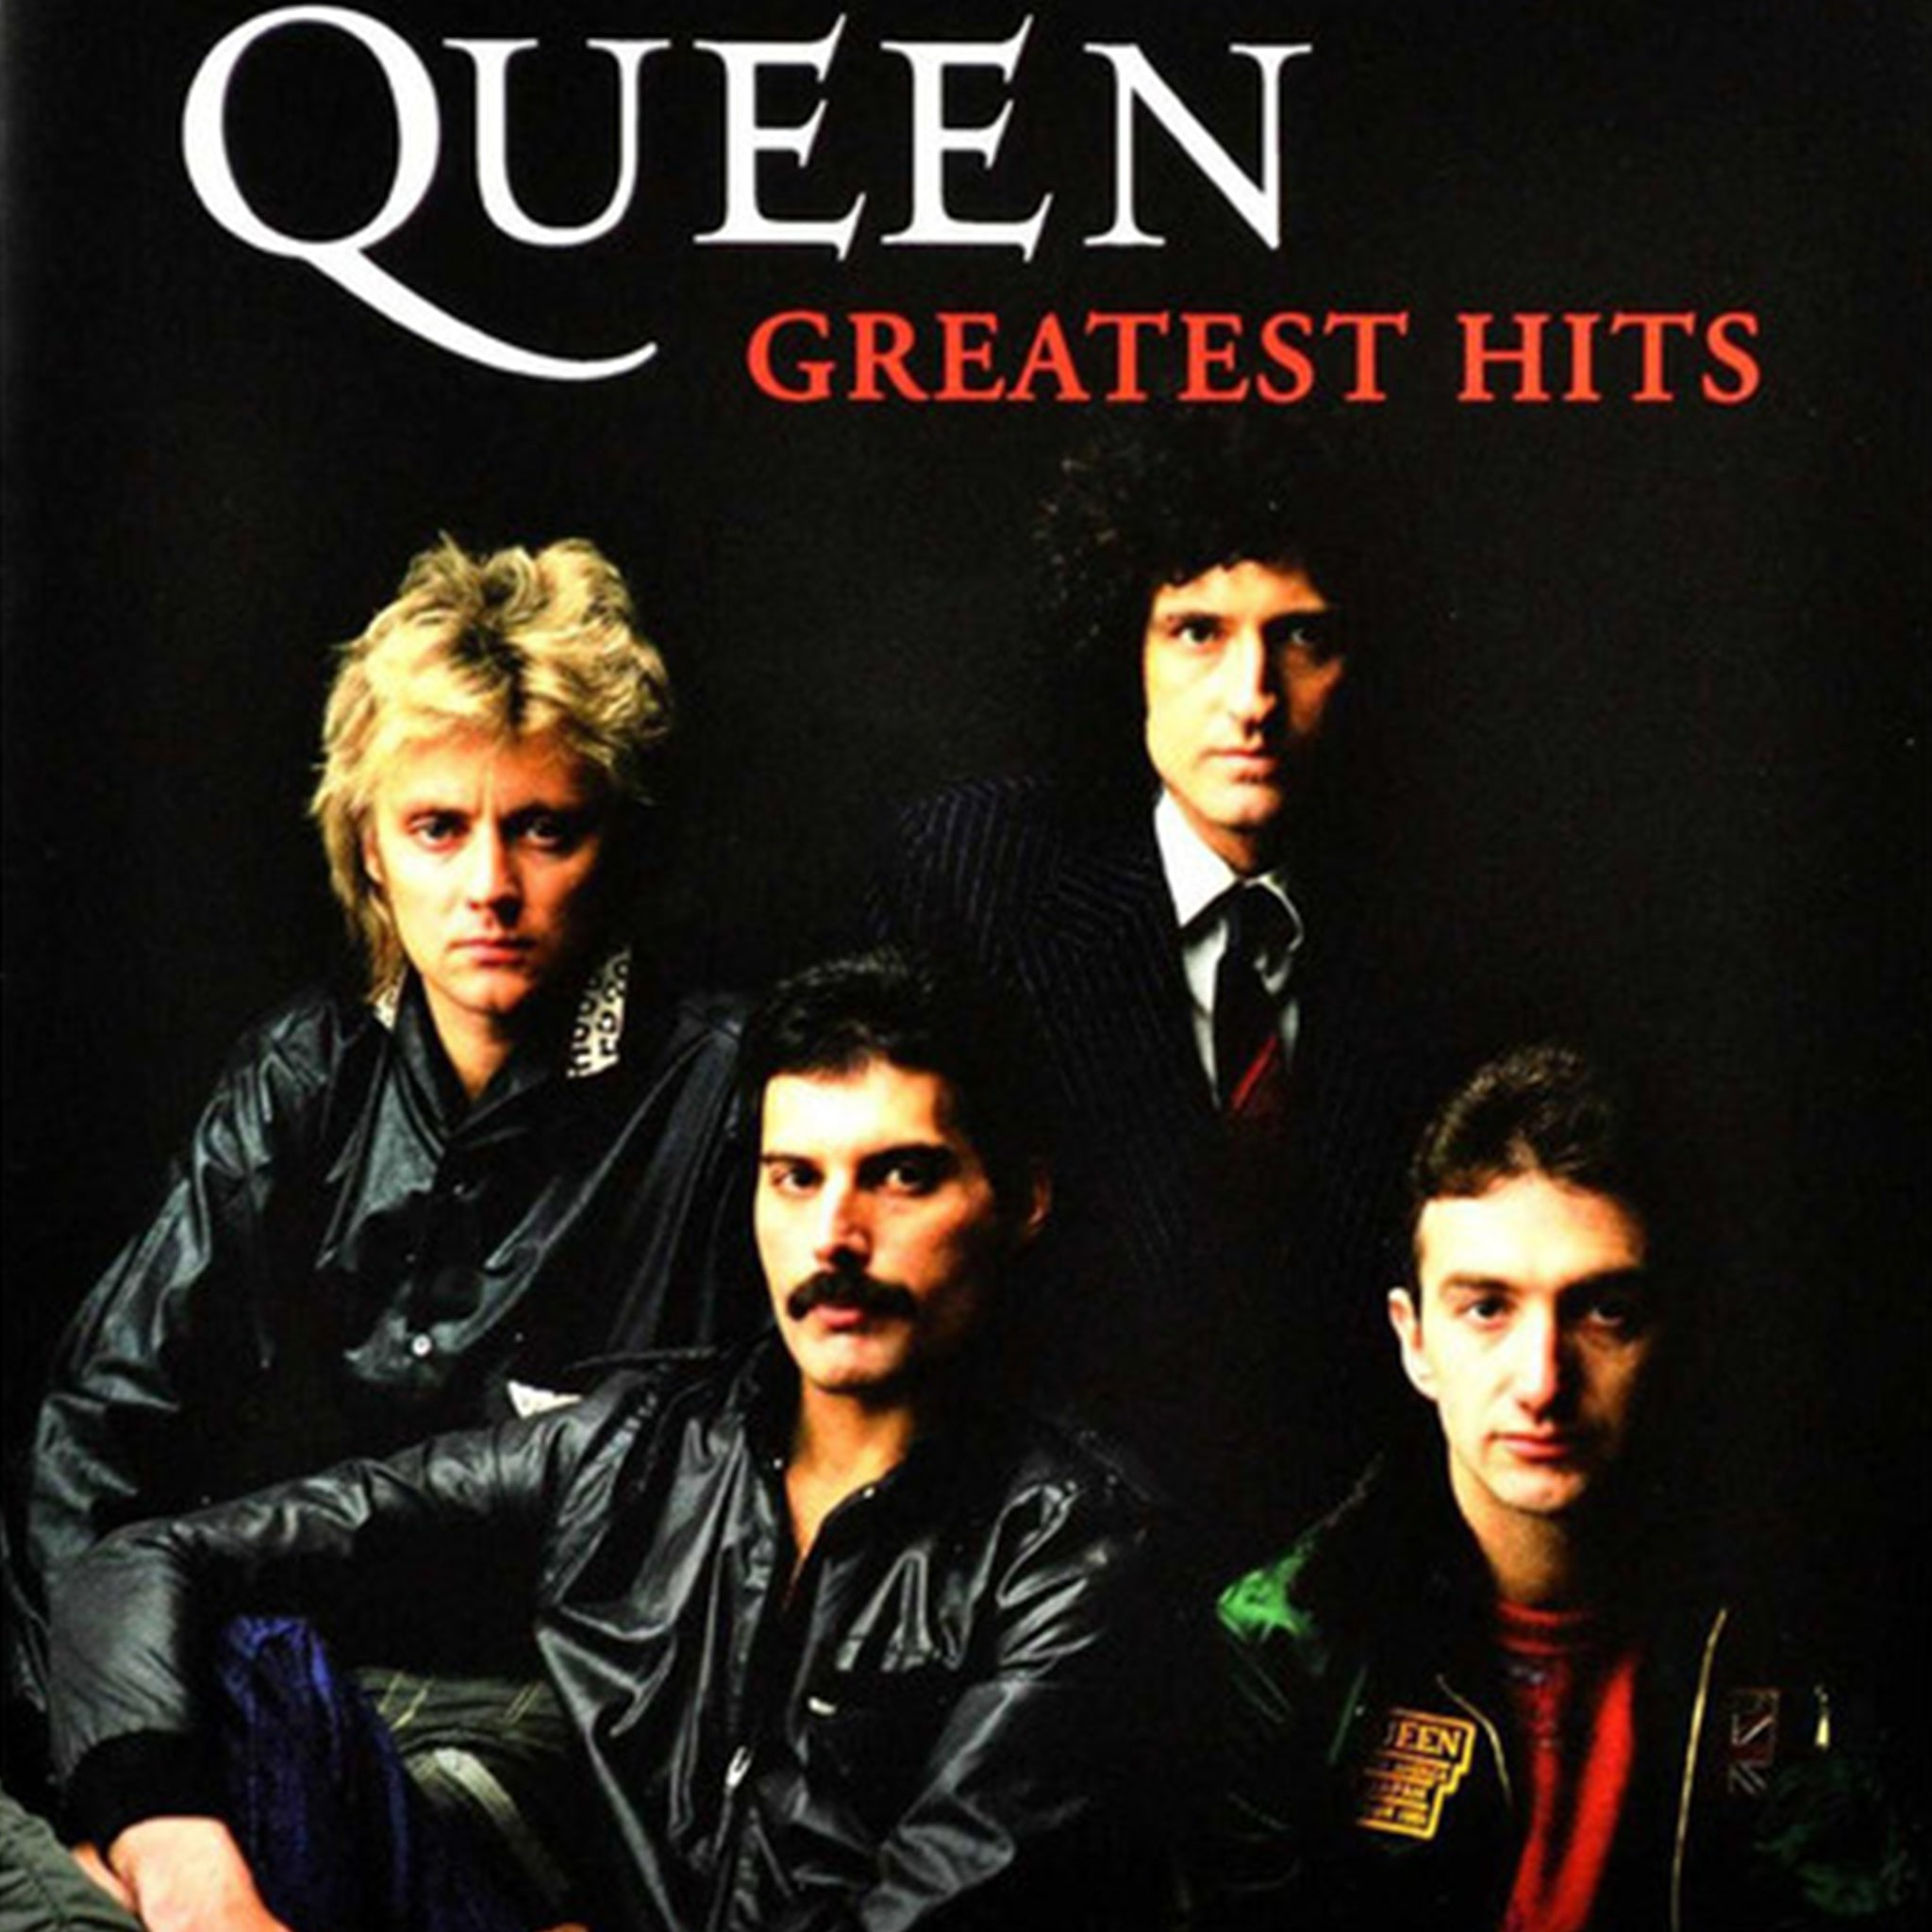 Queen Greatest Hits LP - Blackbird General Store